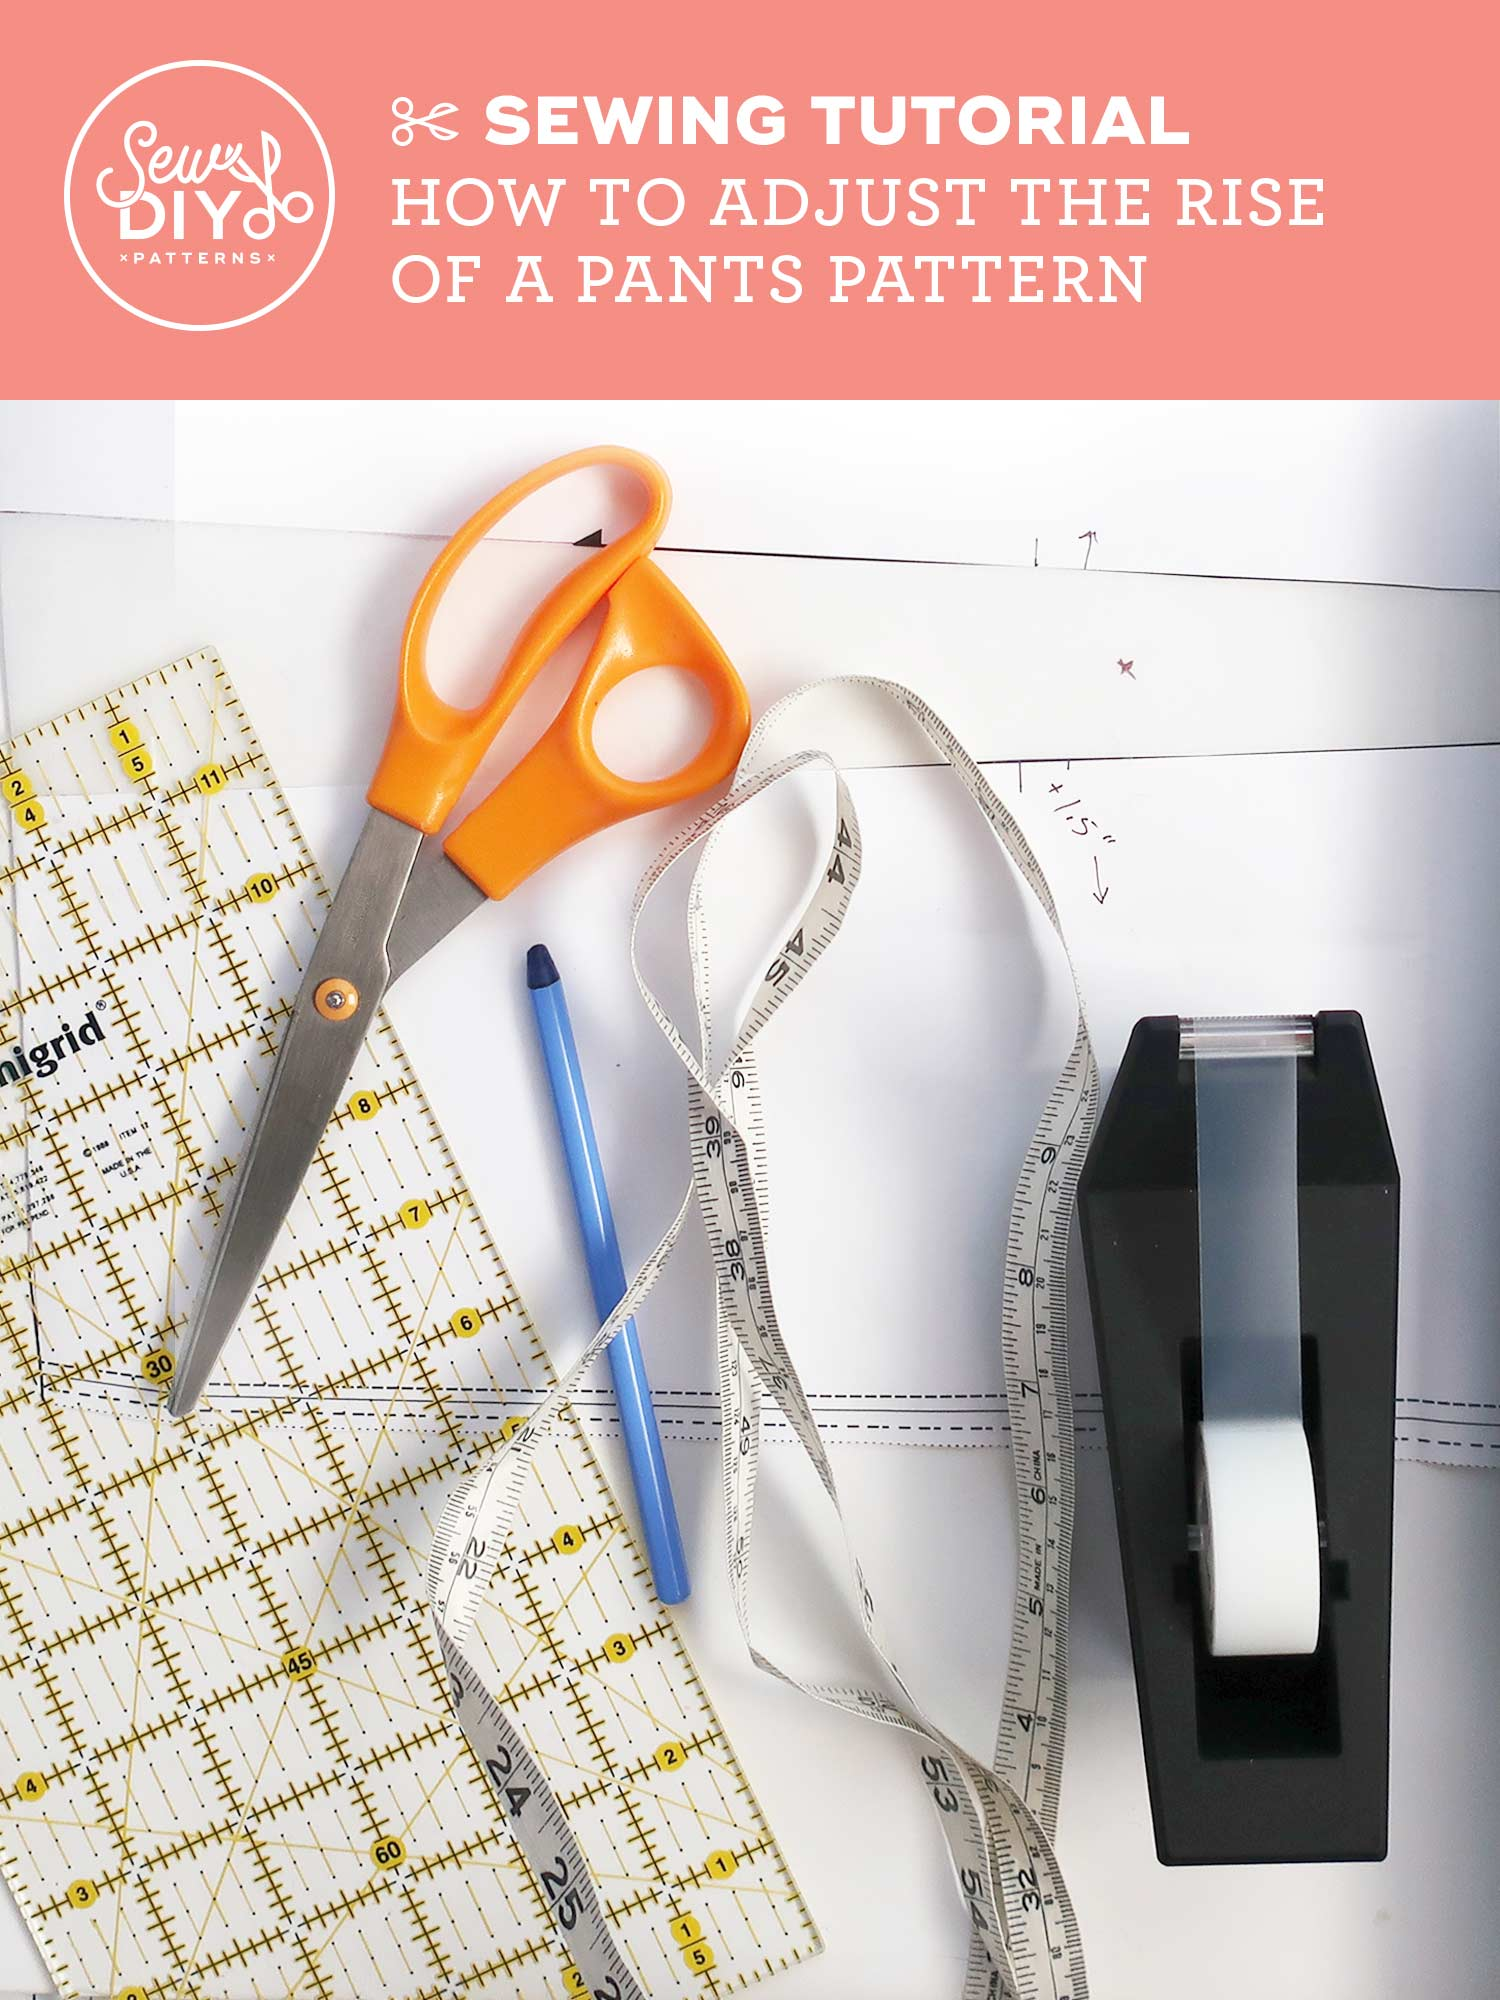 Learn how to lengthen or shorten the rise of a pants pattern in this video from Sew DIY